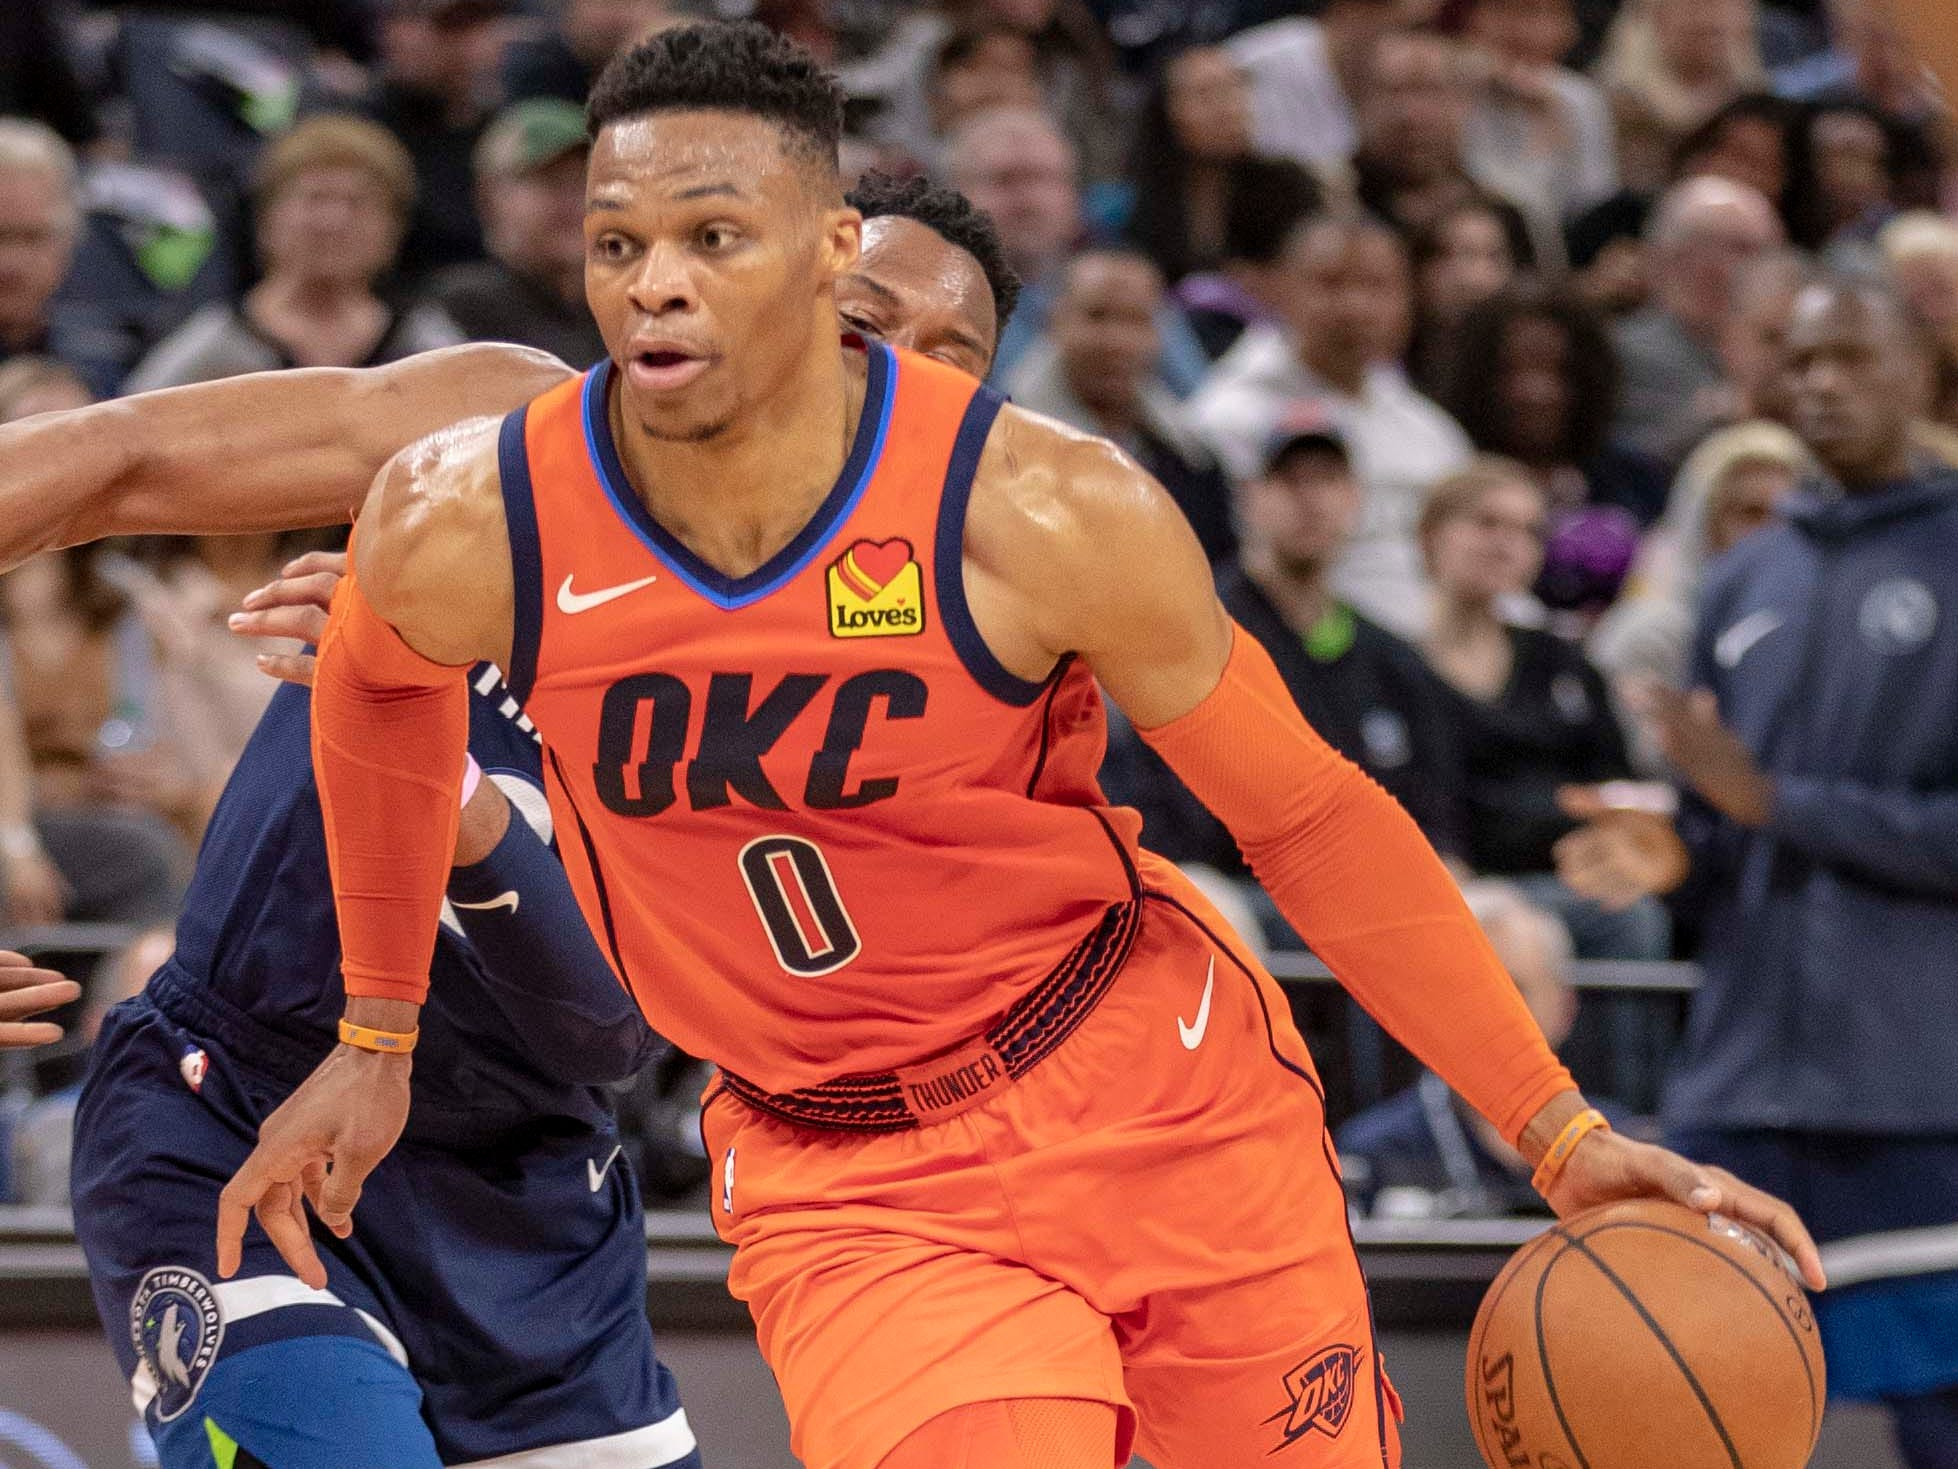 121. Russell Westbrook, Thunder (April 7): 27 points, 15 assist, 10 rebounds in 132-126 win over Timberwolves (32nd of season).